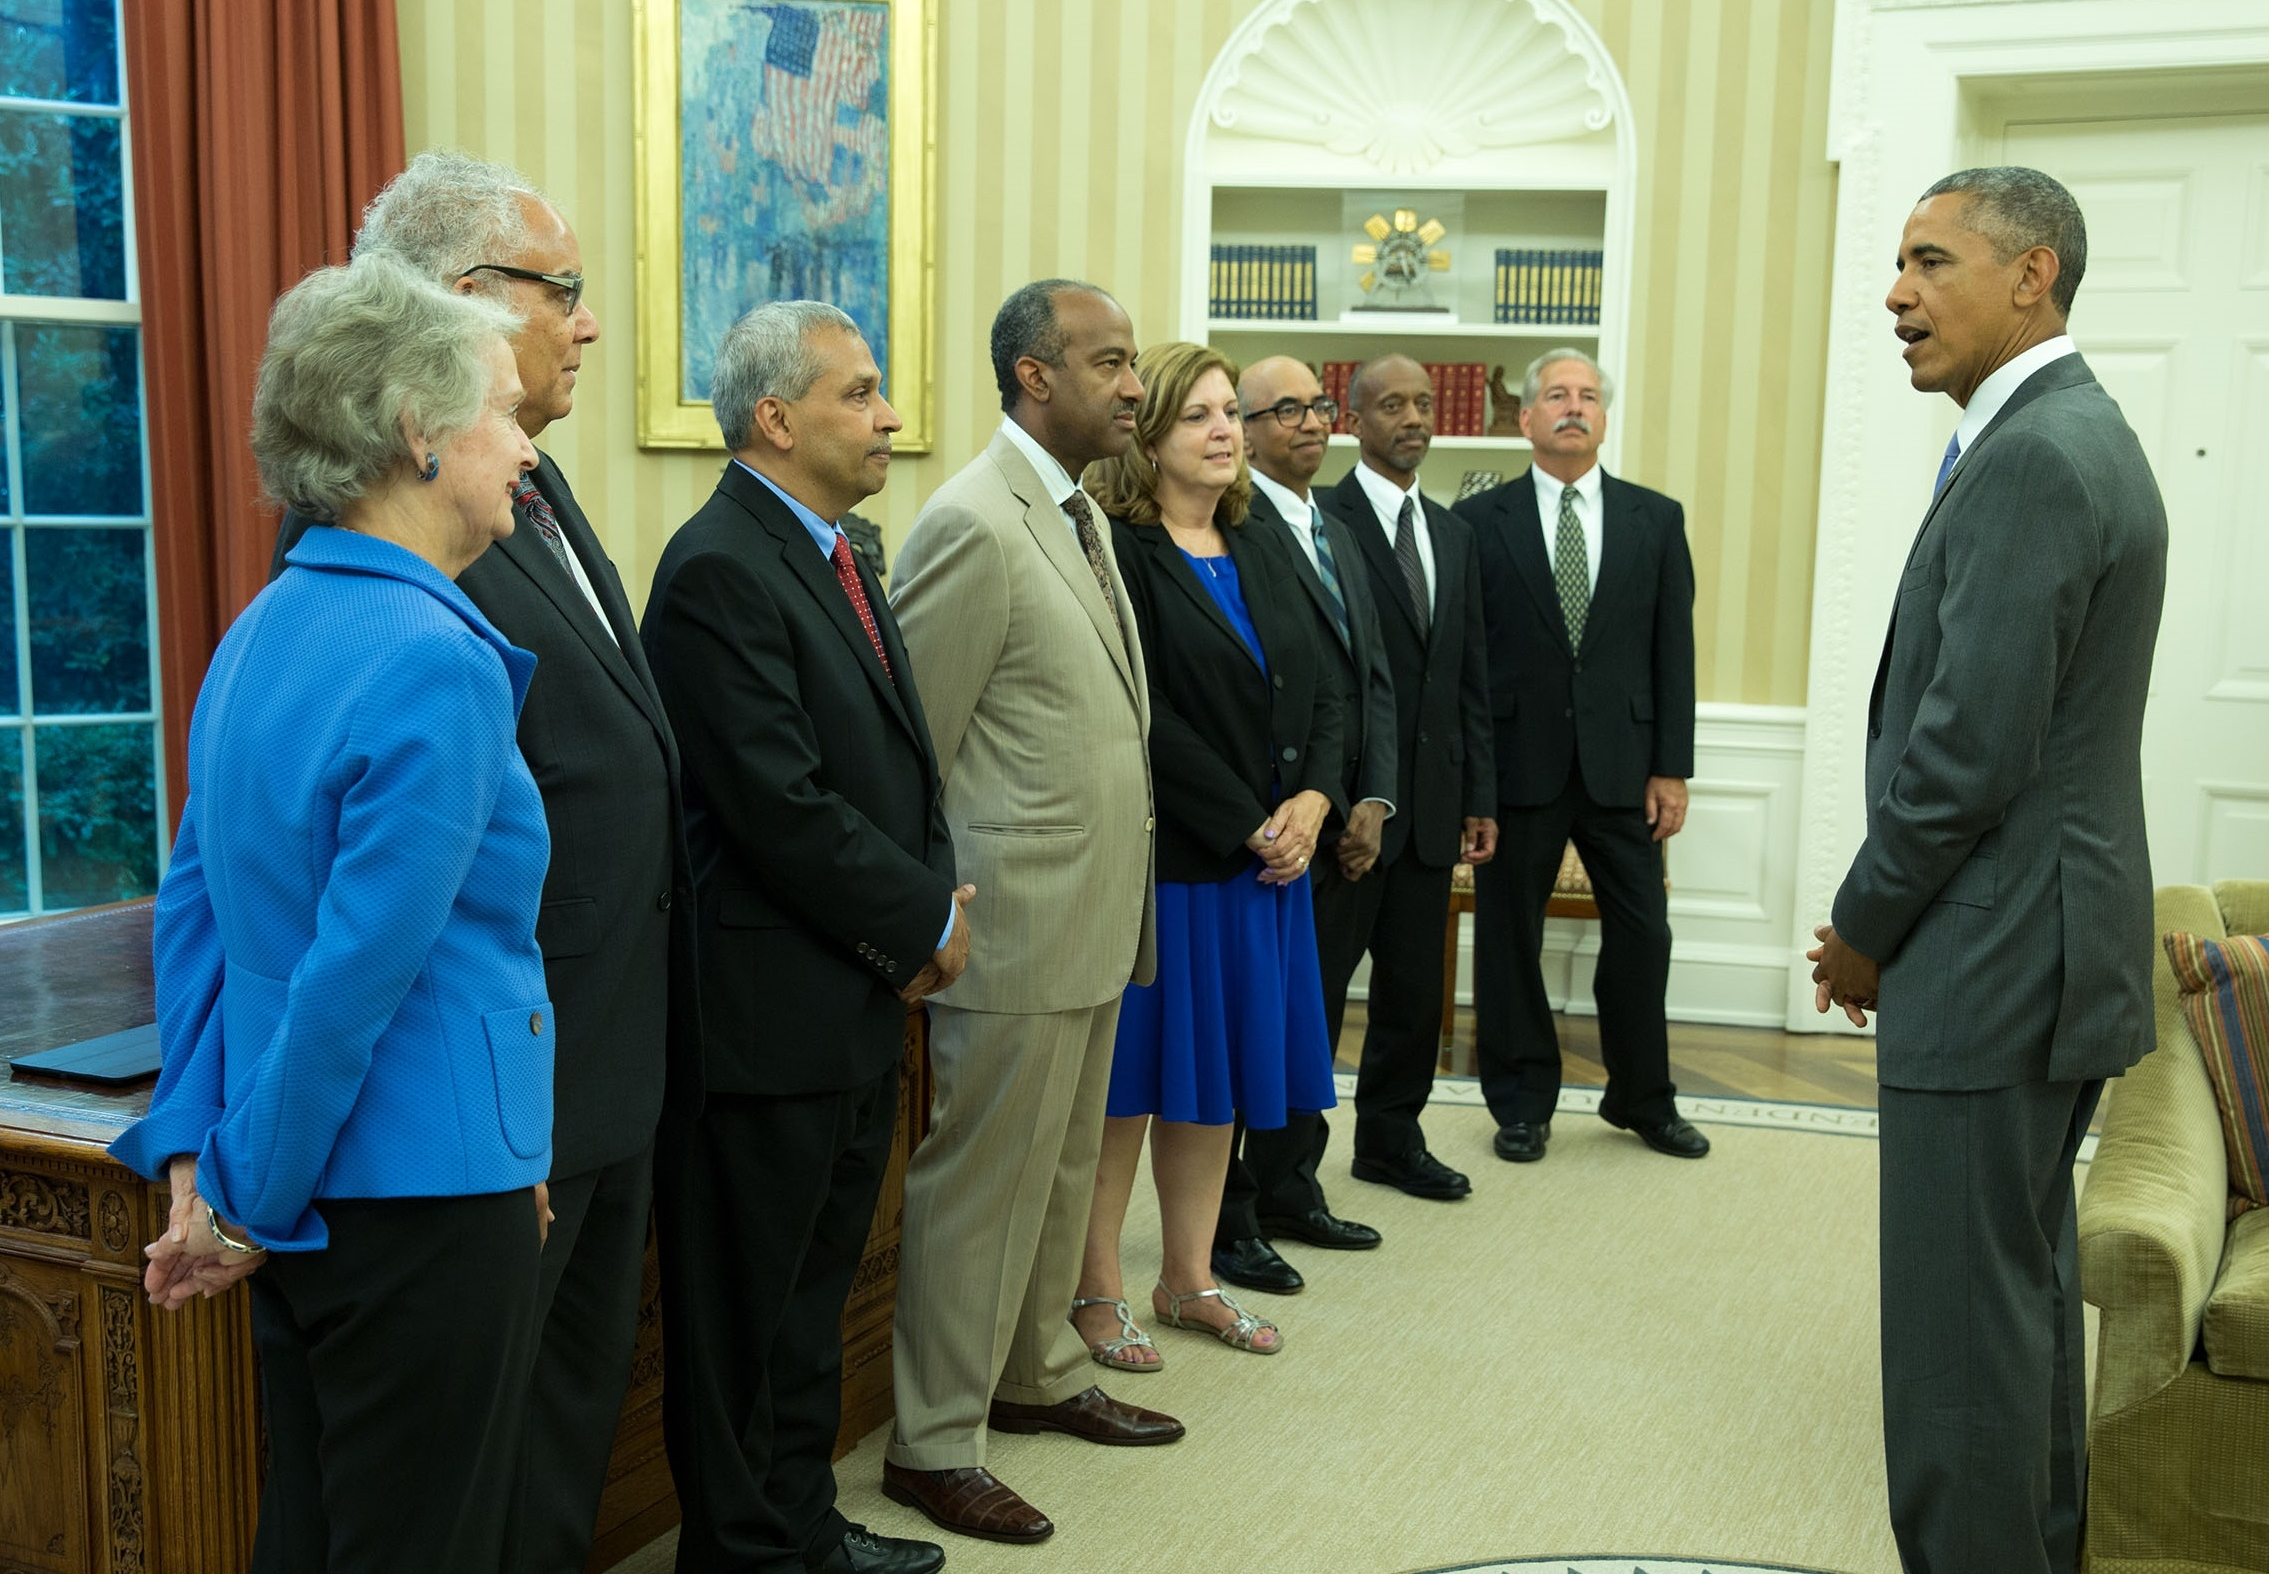 In June 2015, Liz Parry (5th from left) visited with President Obama and received the Presidential Award for Excellence in Science, Math, and Engineering Mentoring.